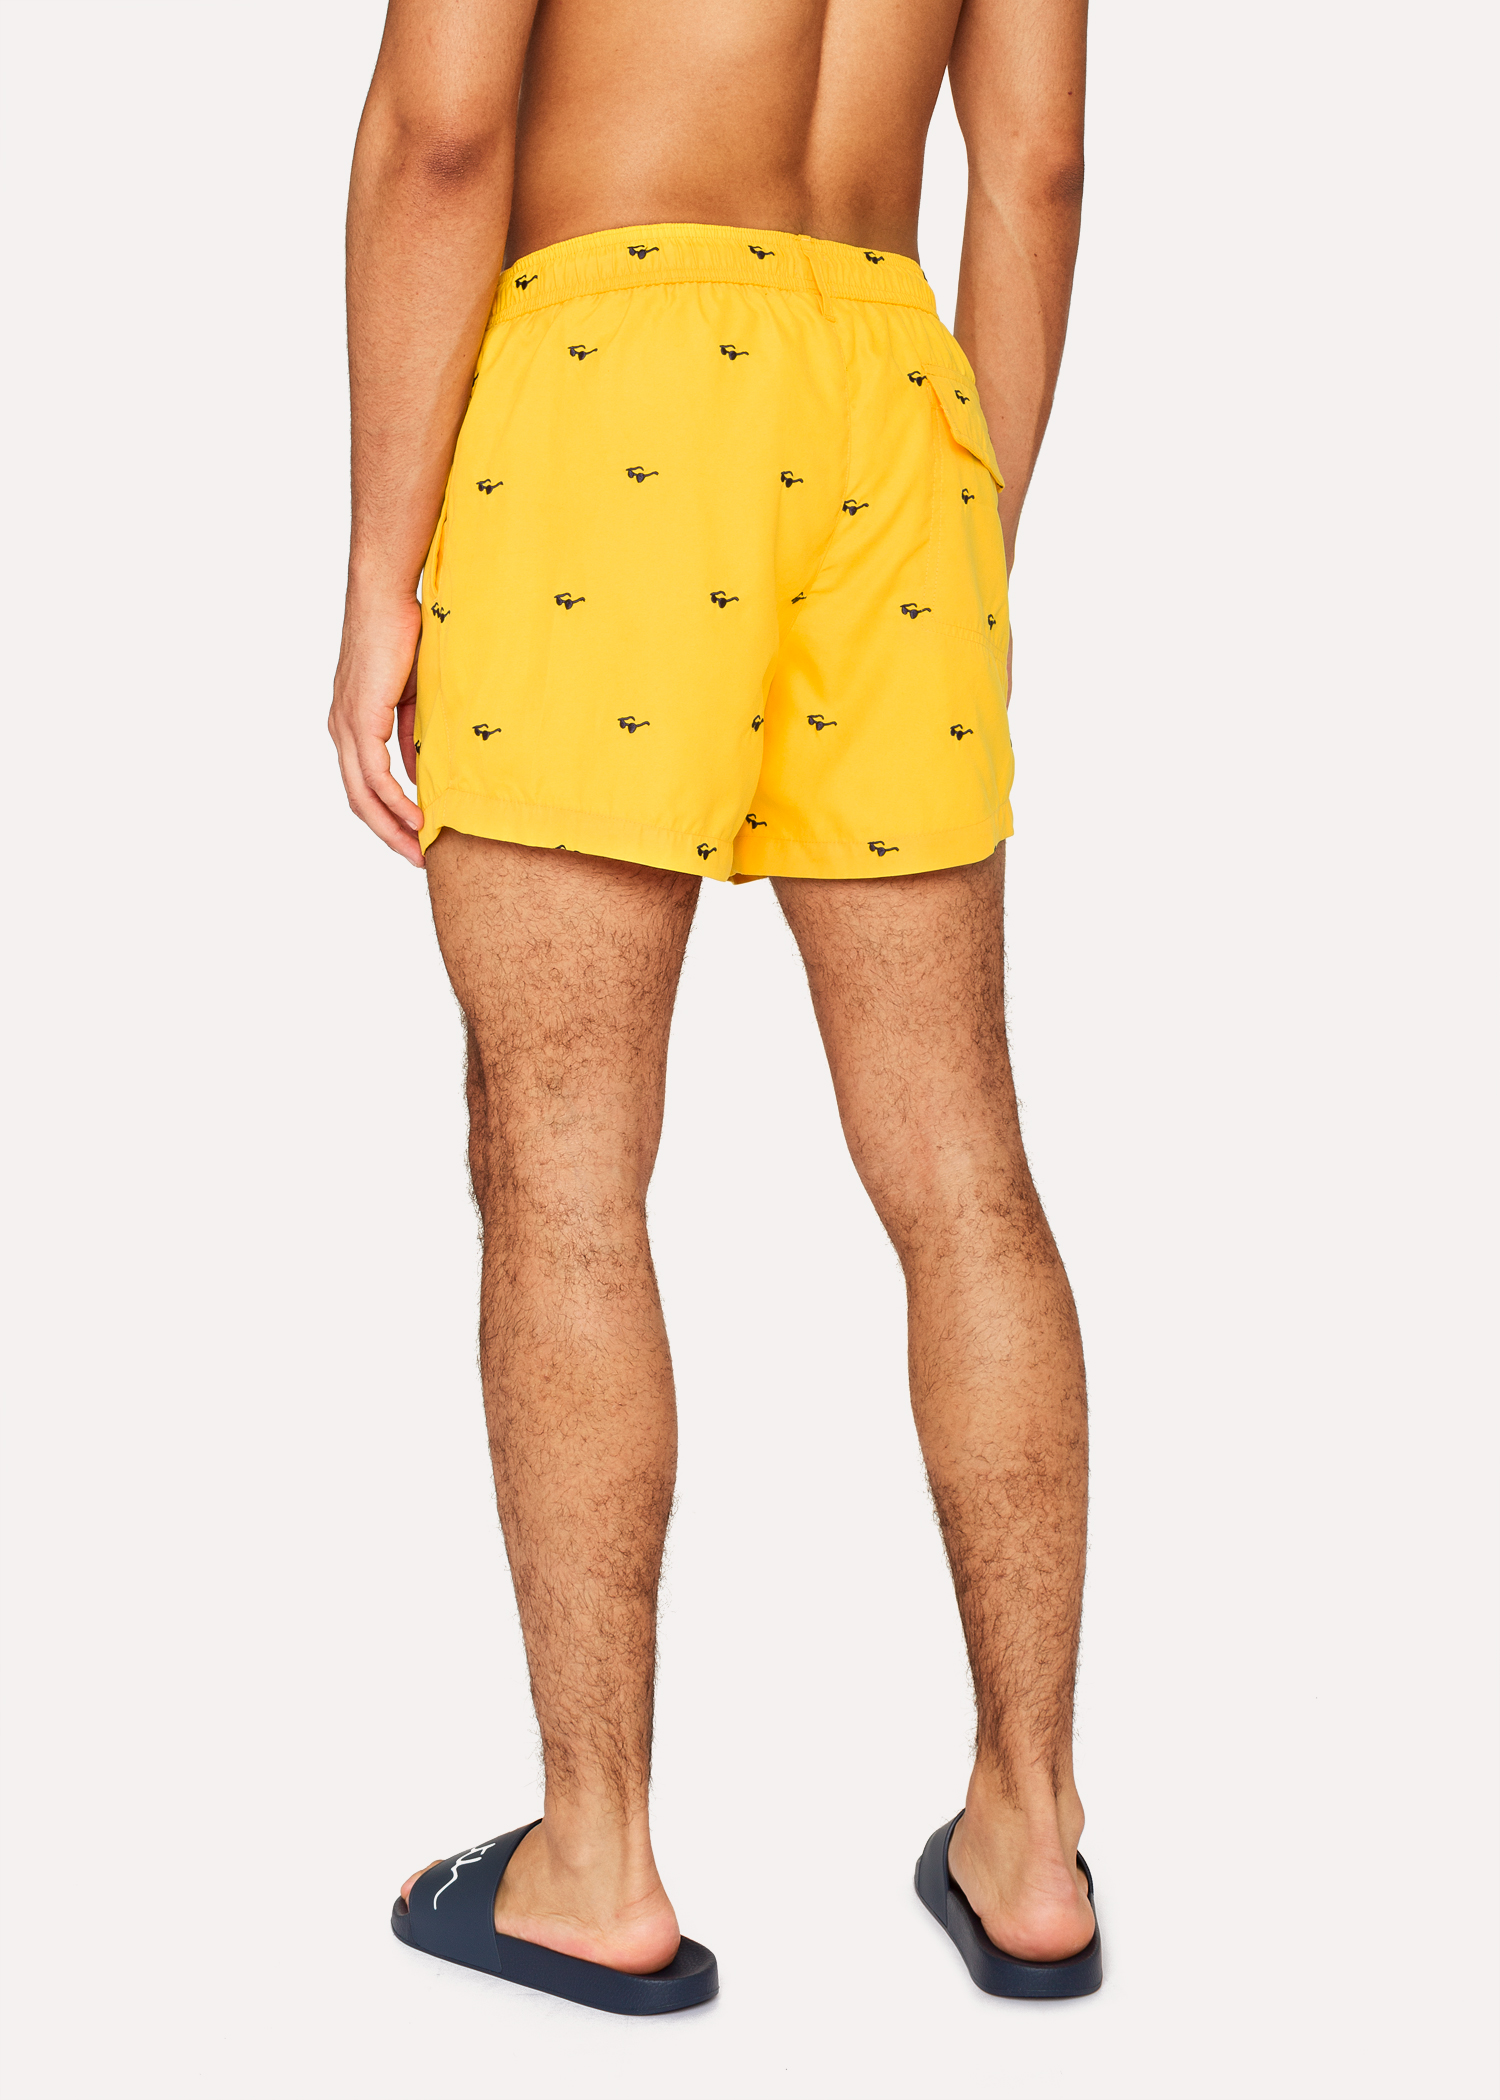 b68a4beac1 Men's Yellow Swim Shorts With 'Sunglasses' Embroidery - Paul Smith ...